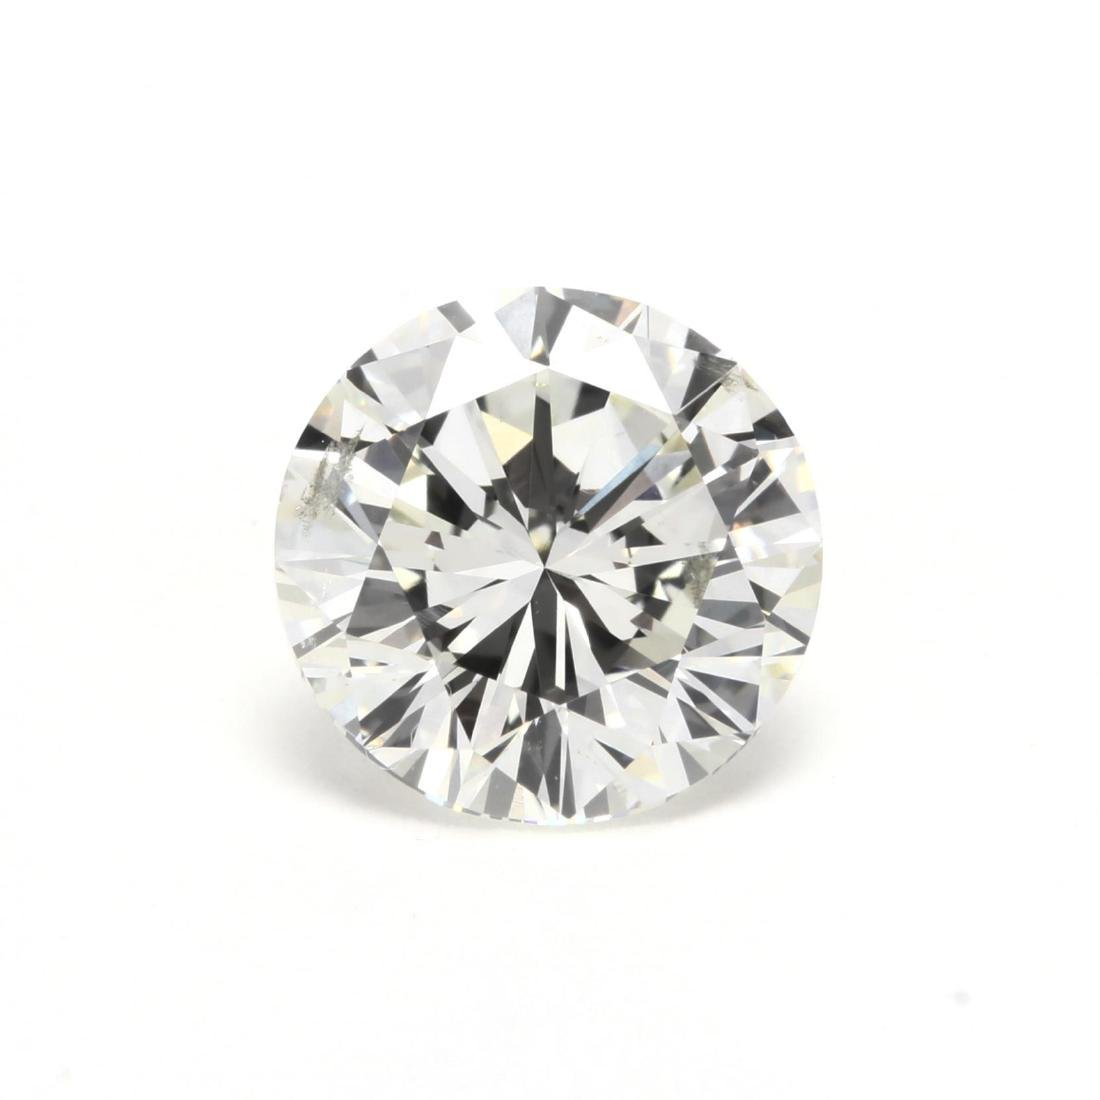 Unmounted Round Brilliant Cut Diamond and 14KT Gold - 2